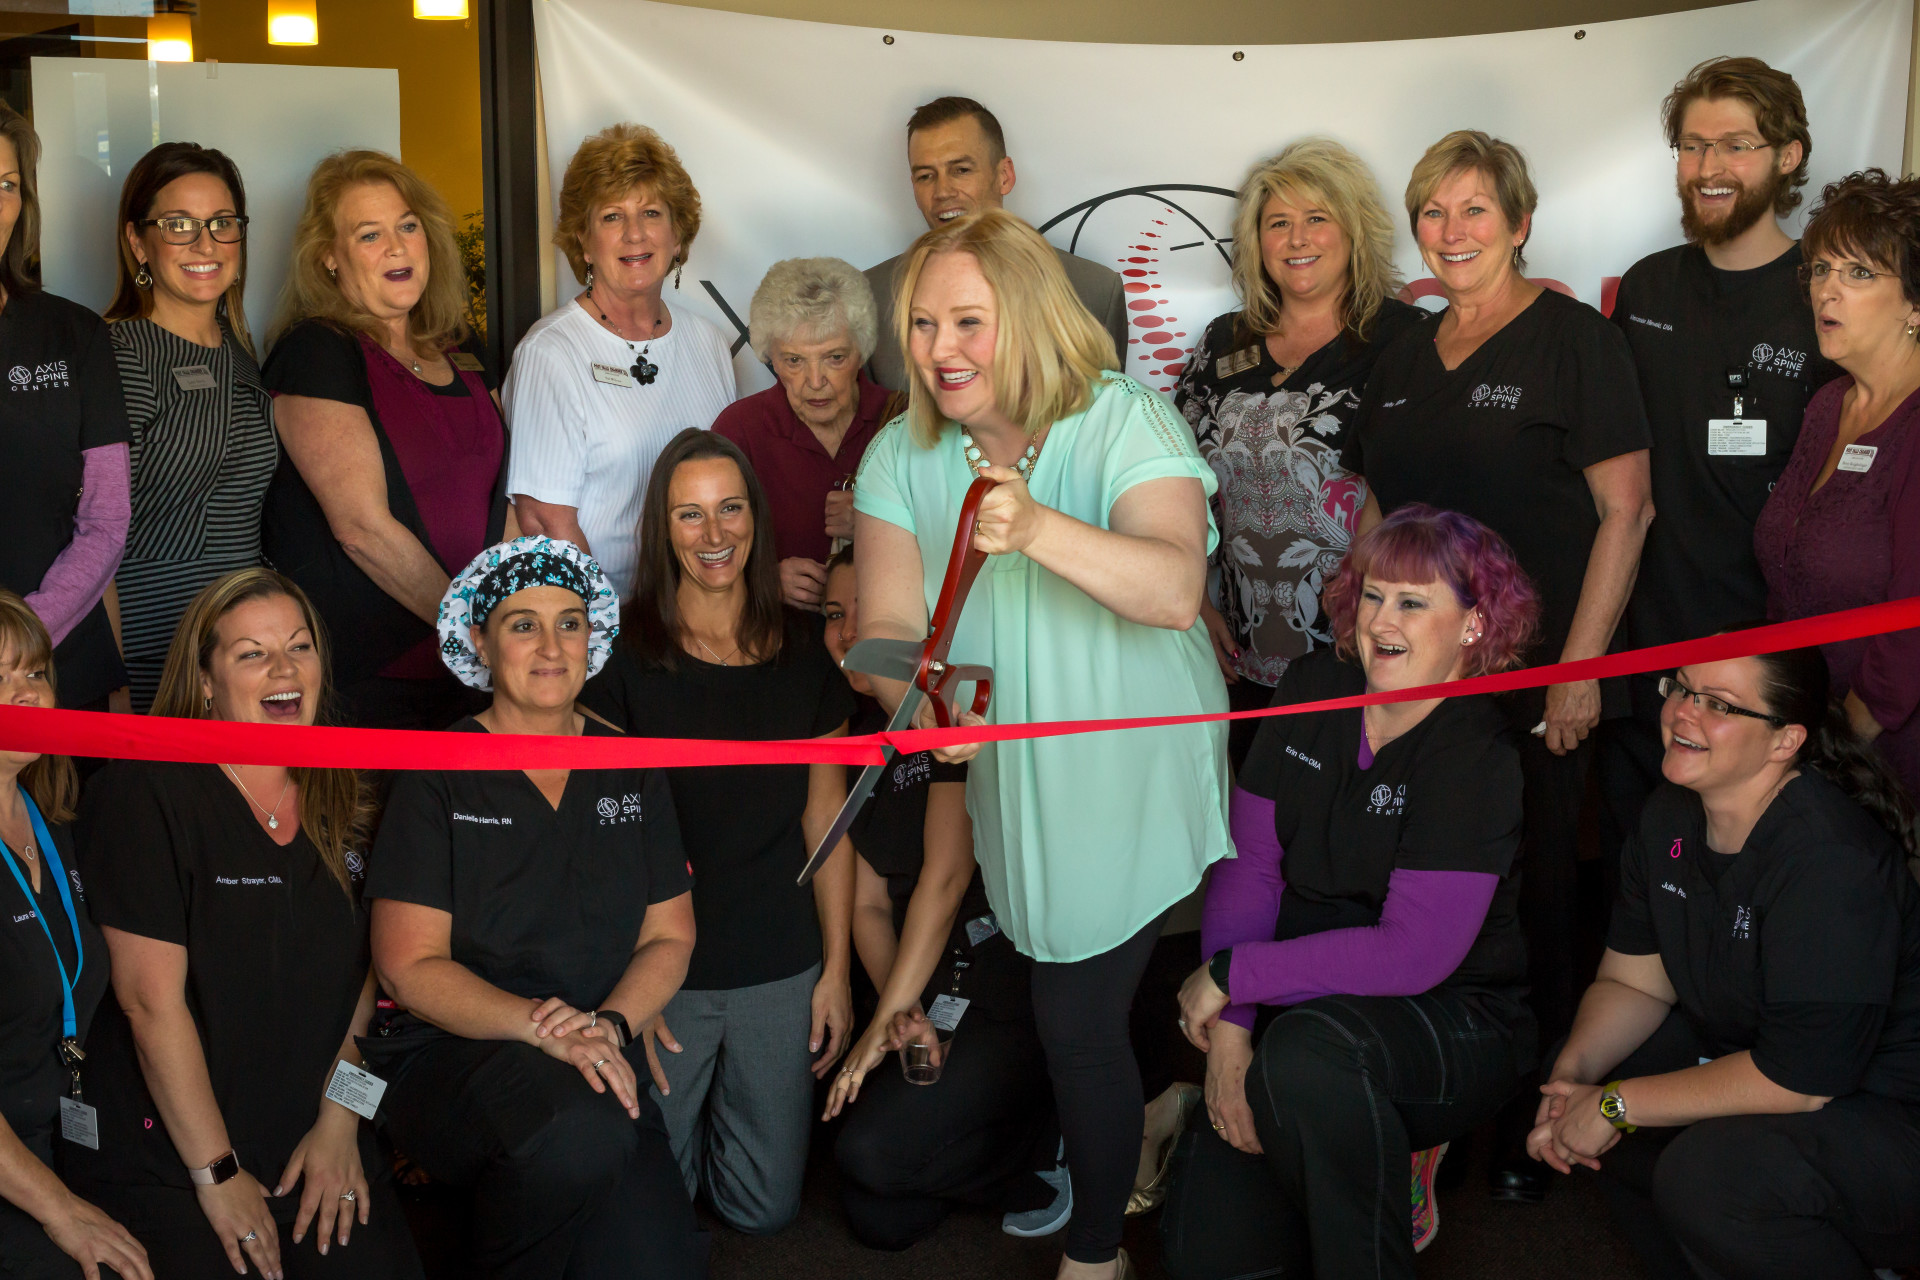 Axis-Spine-Ribbon-Cutting-2017-w1920.jpg